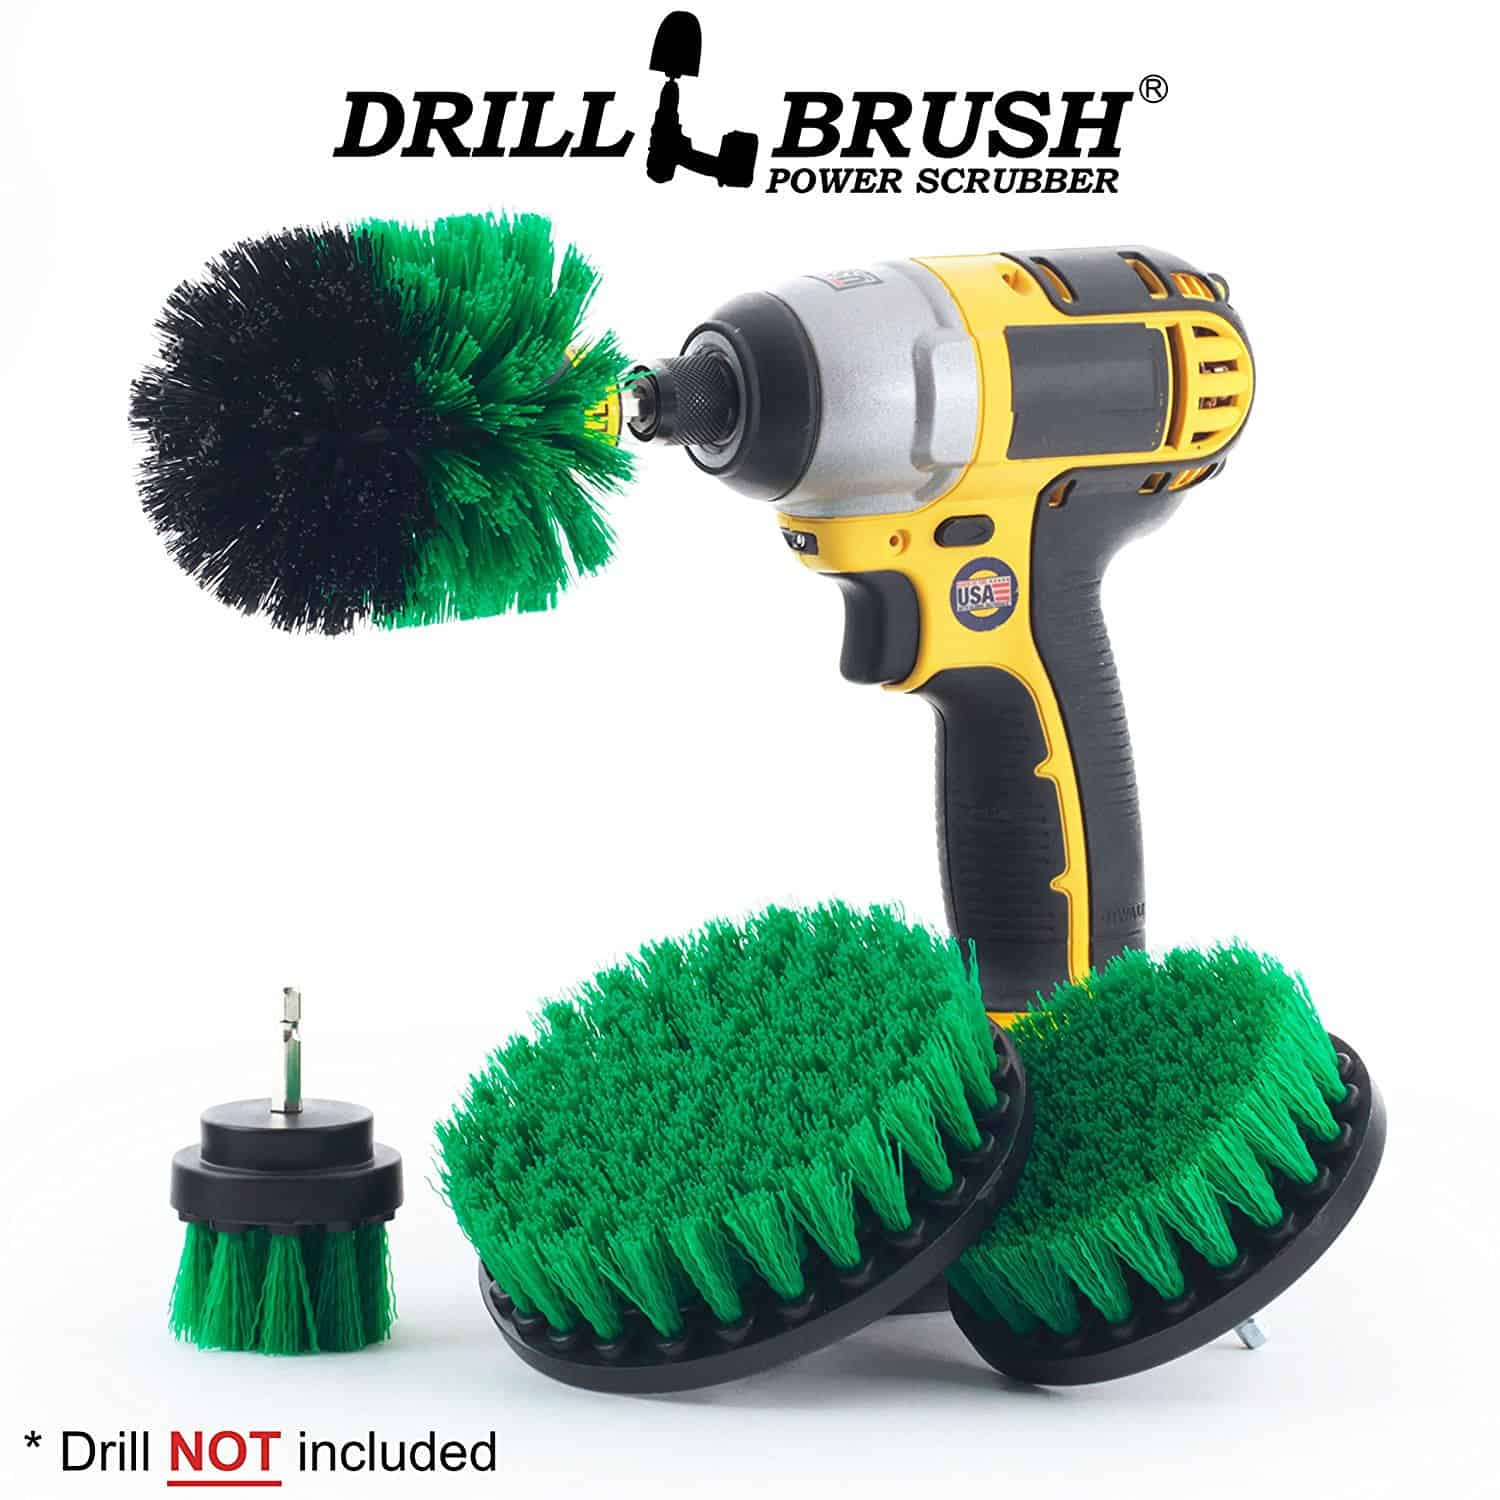 Bathroom cleaning scrub brush with four different sizes and shapes of brushes.